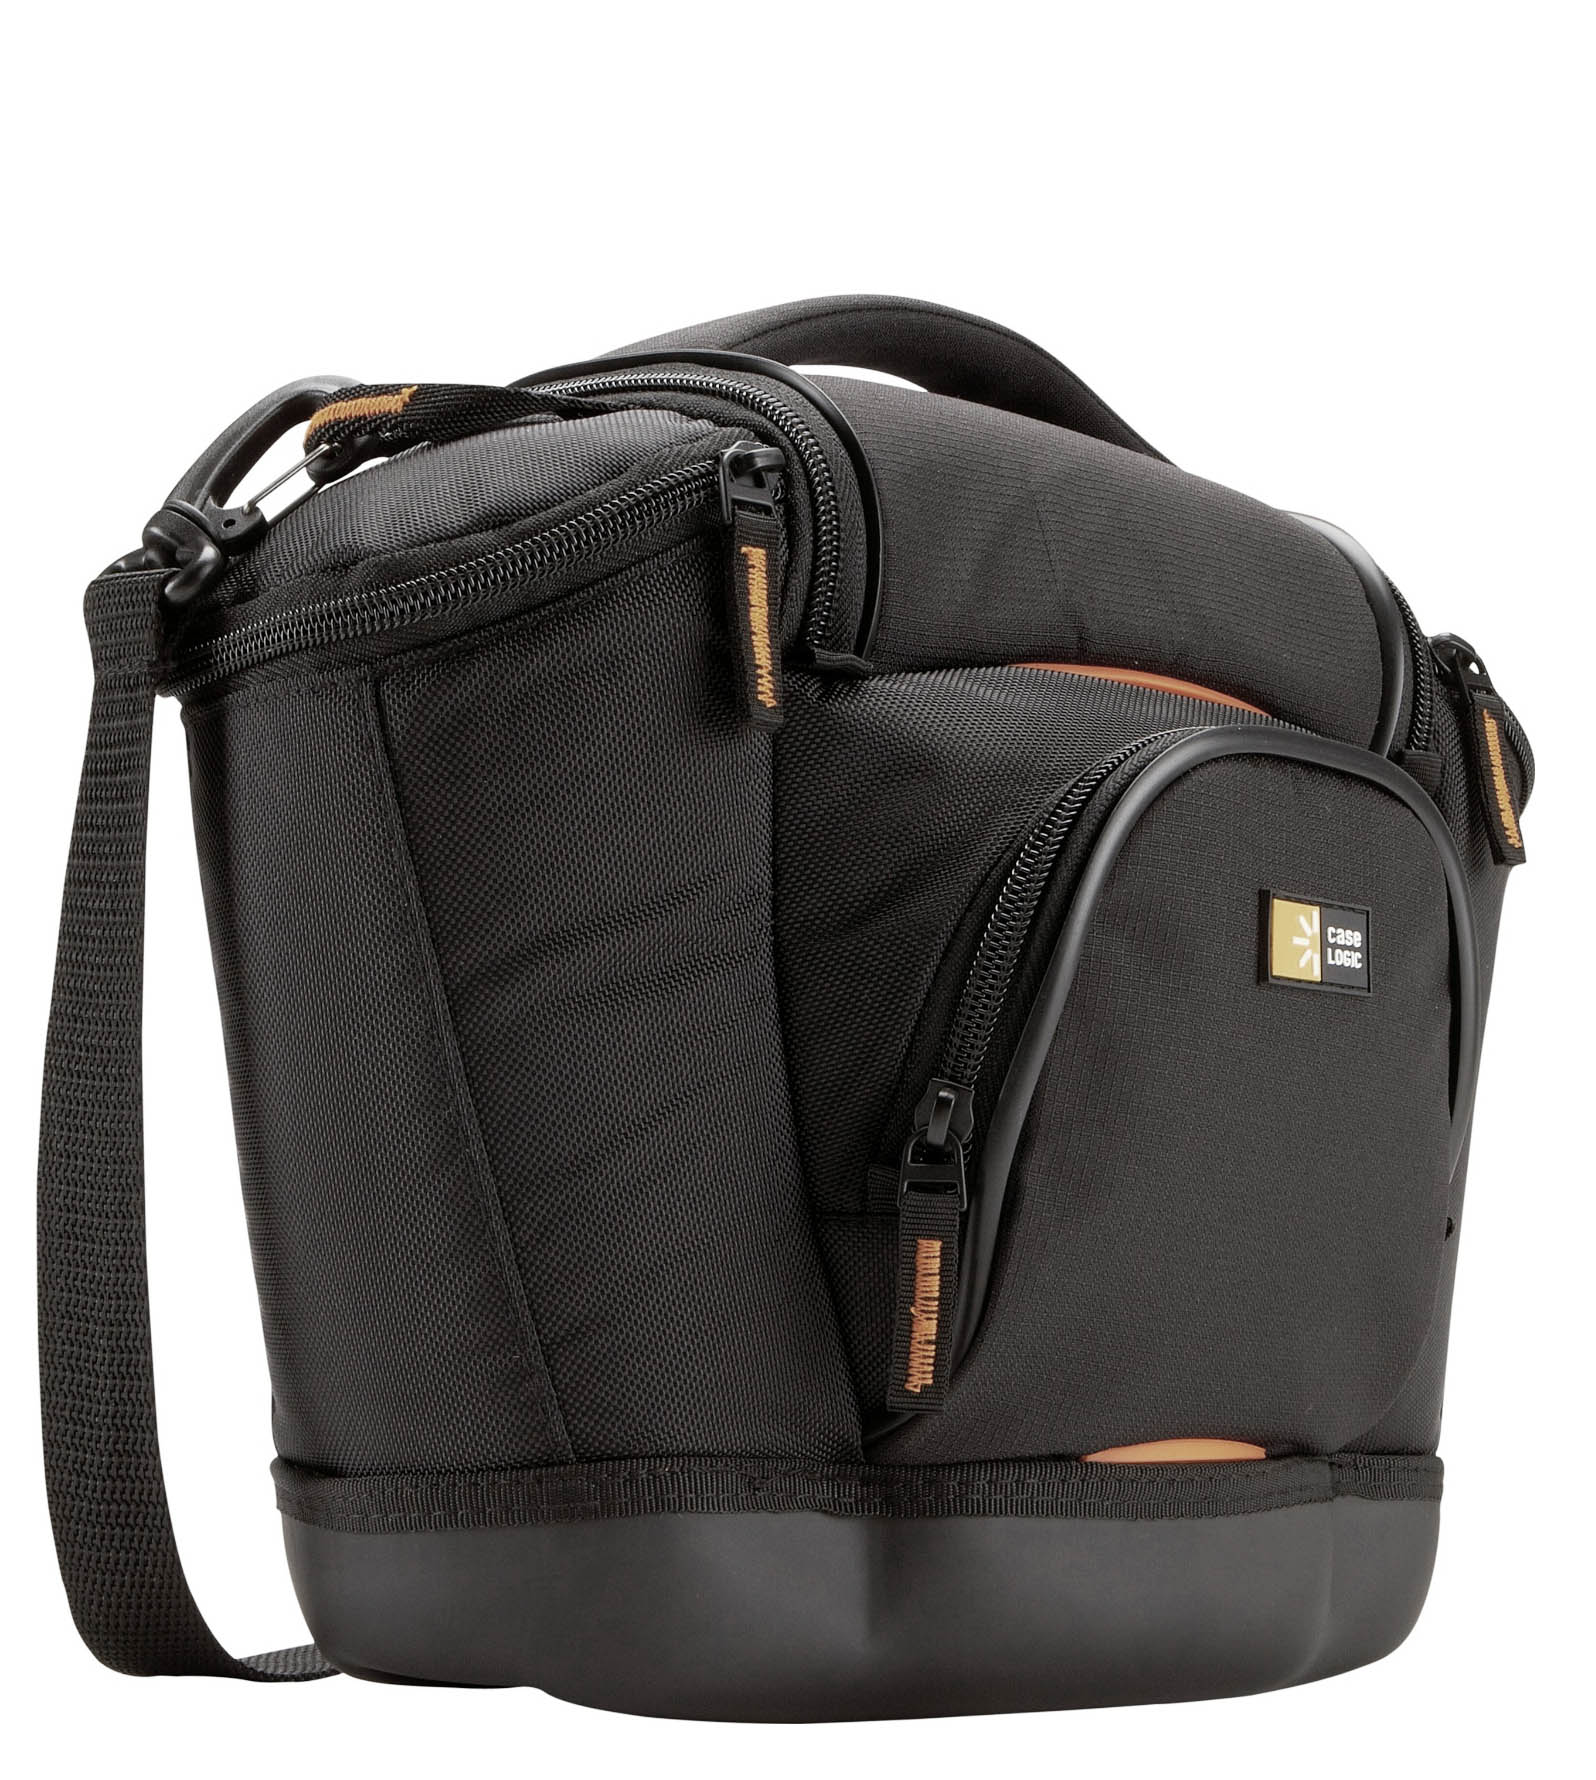 Small Non-Canon Camera Bag